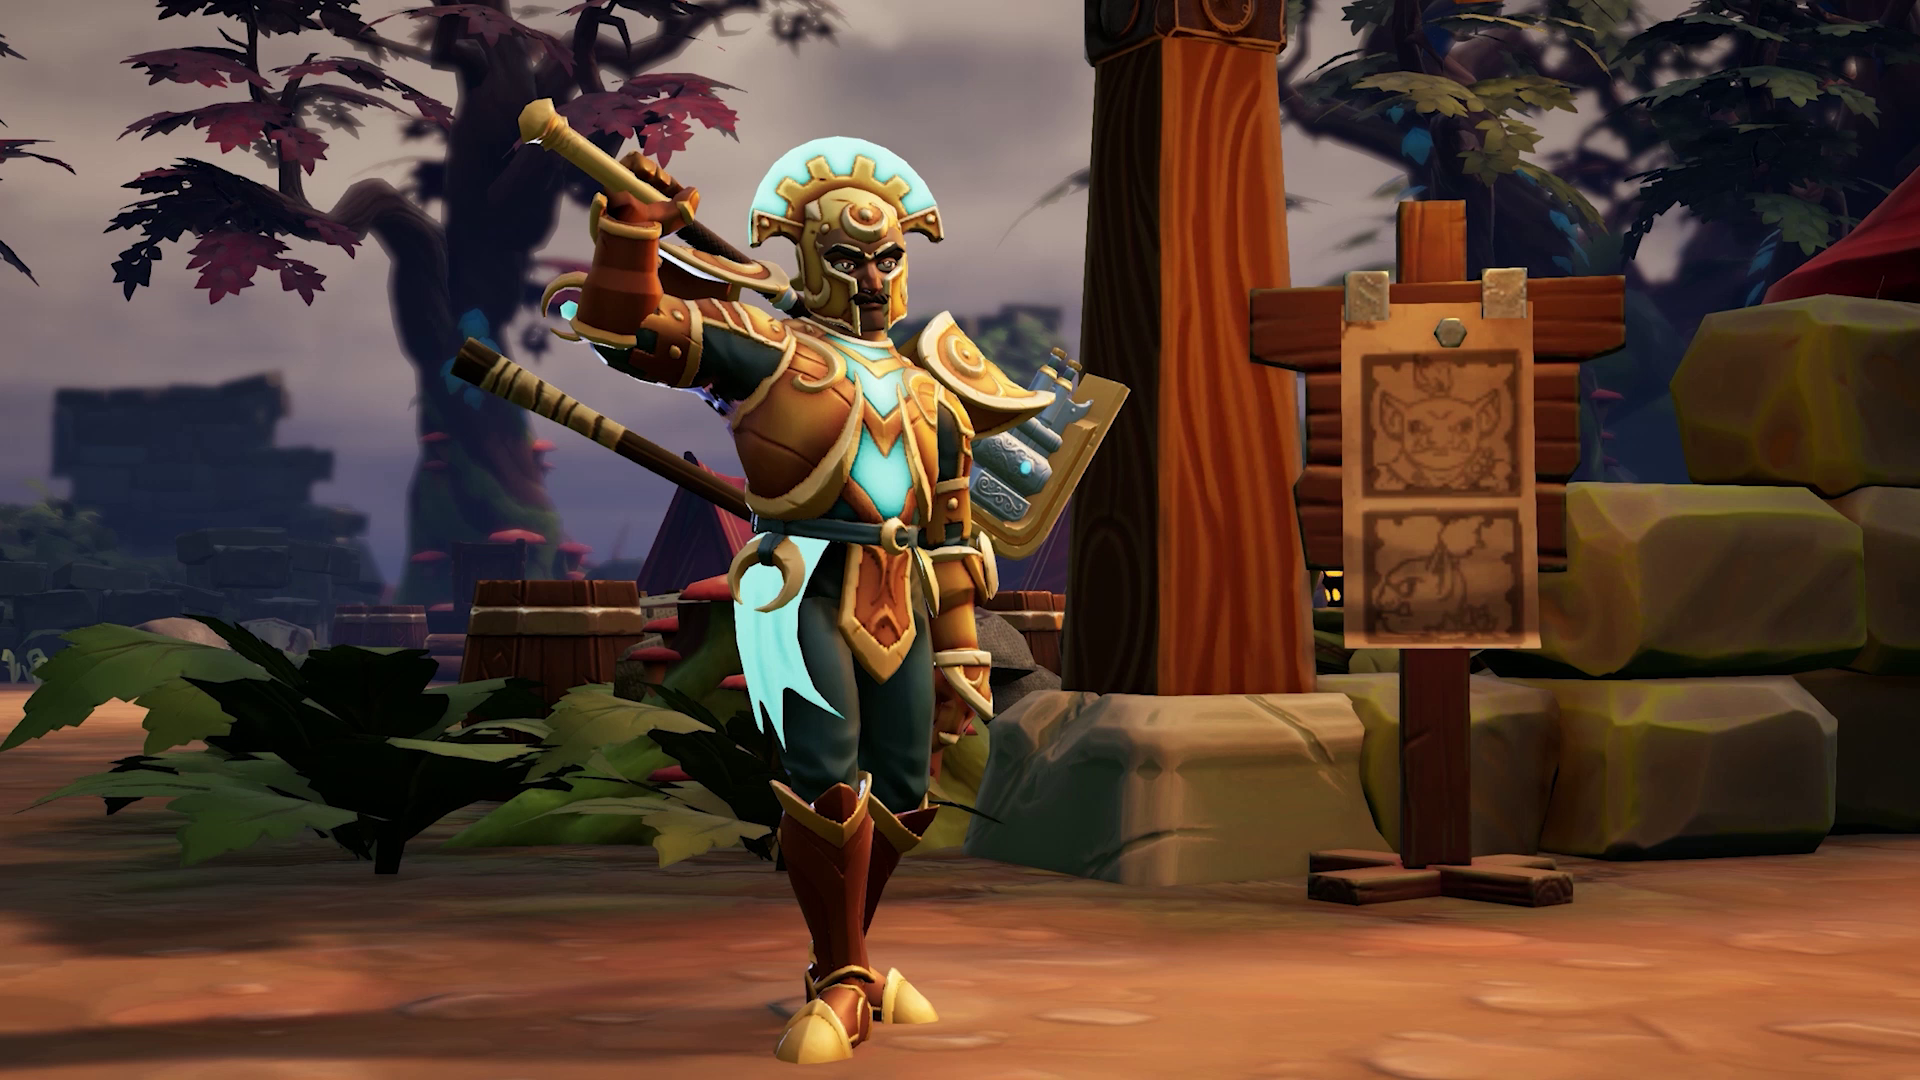 Torchlight 3 is leaving Early Access in October